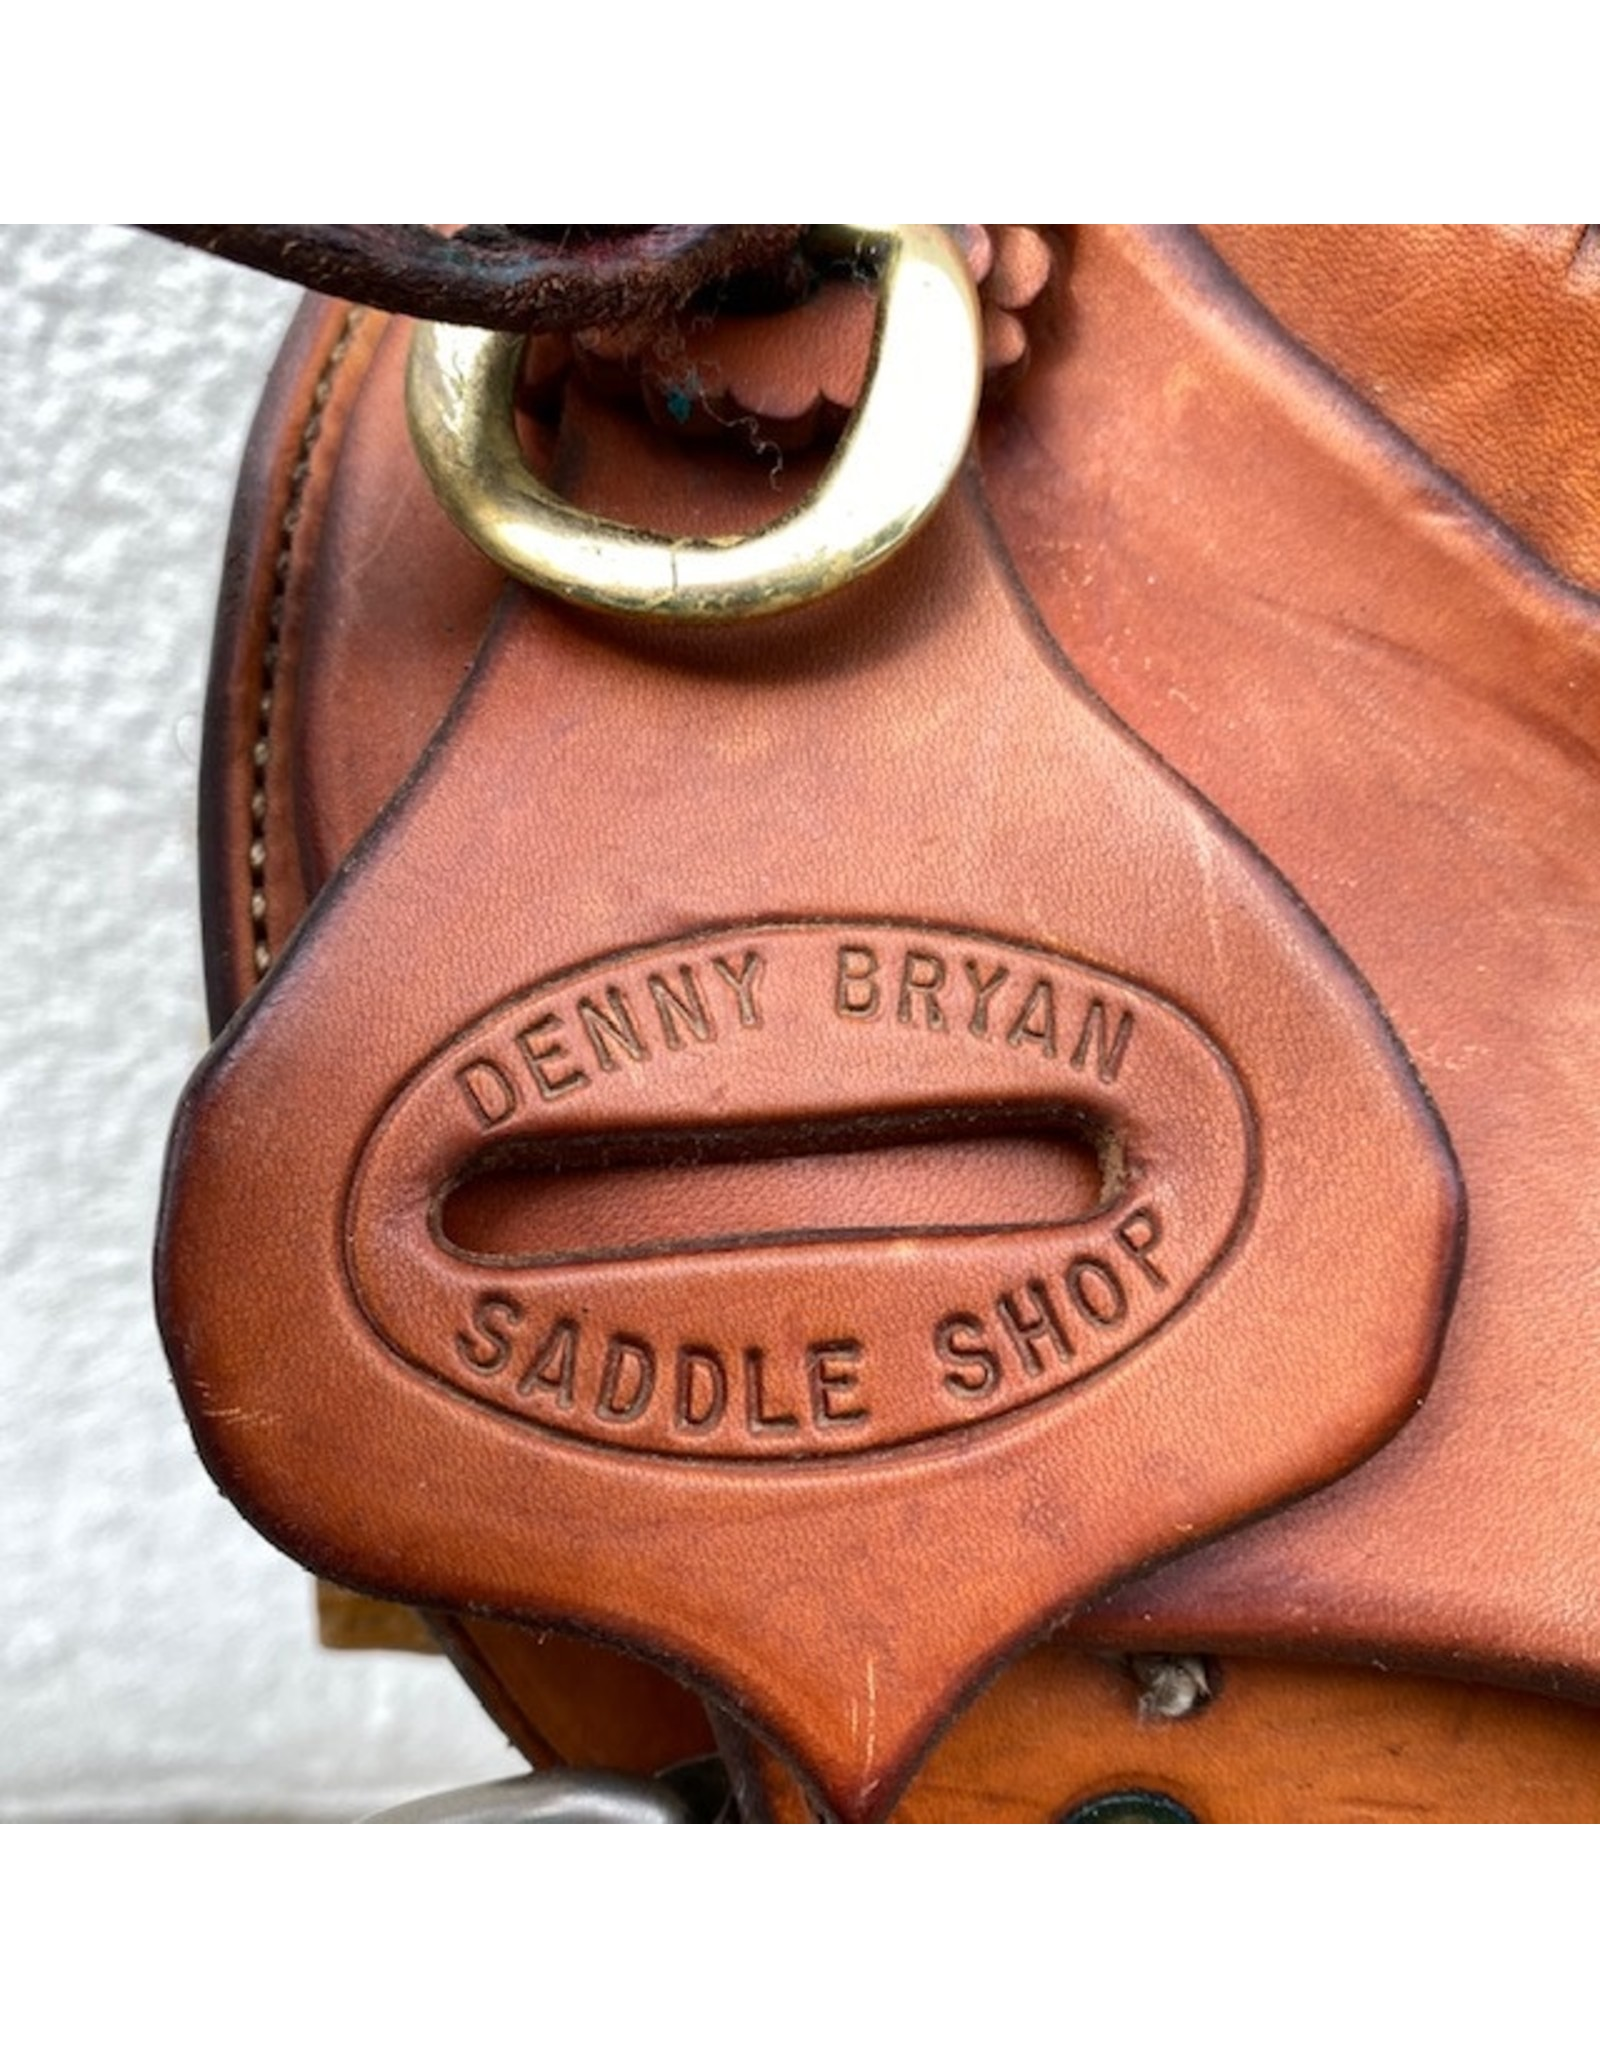 "Denny Bryan Saddle 16"" Full Quarter Bars"